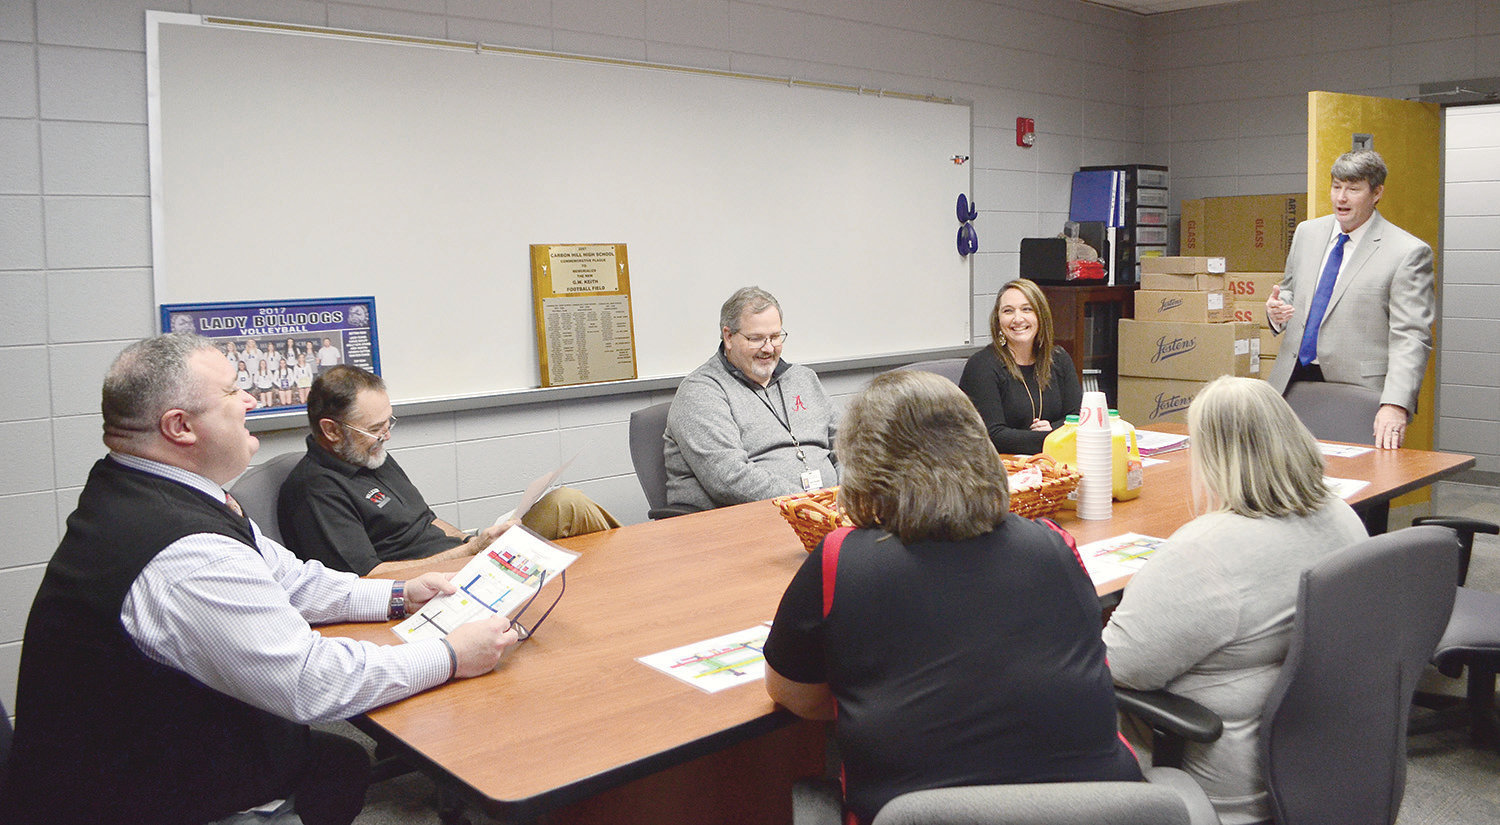 Carbon Hill High School Assistant Principal Chris Harris, standing, discusses a new wayfinding effort at the school to help first responders.